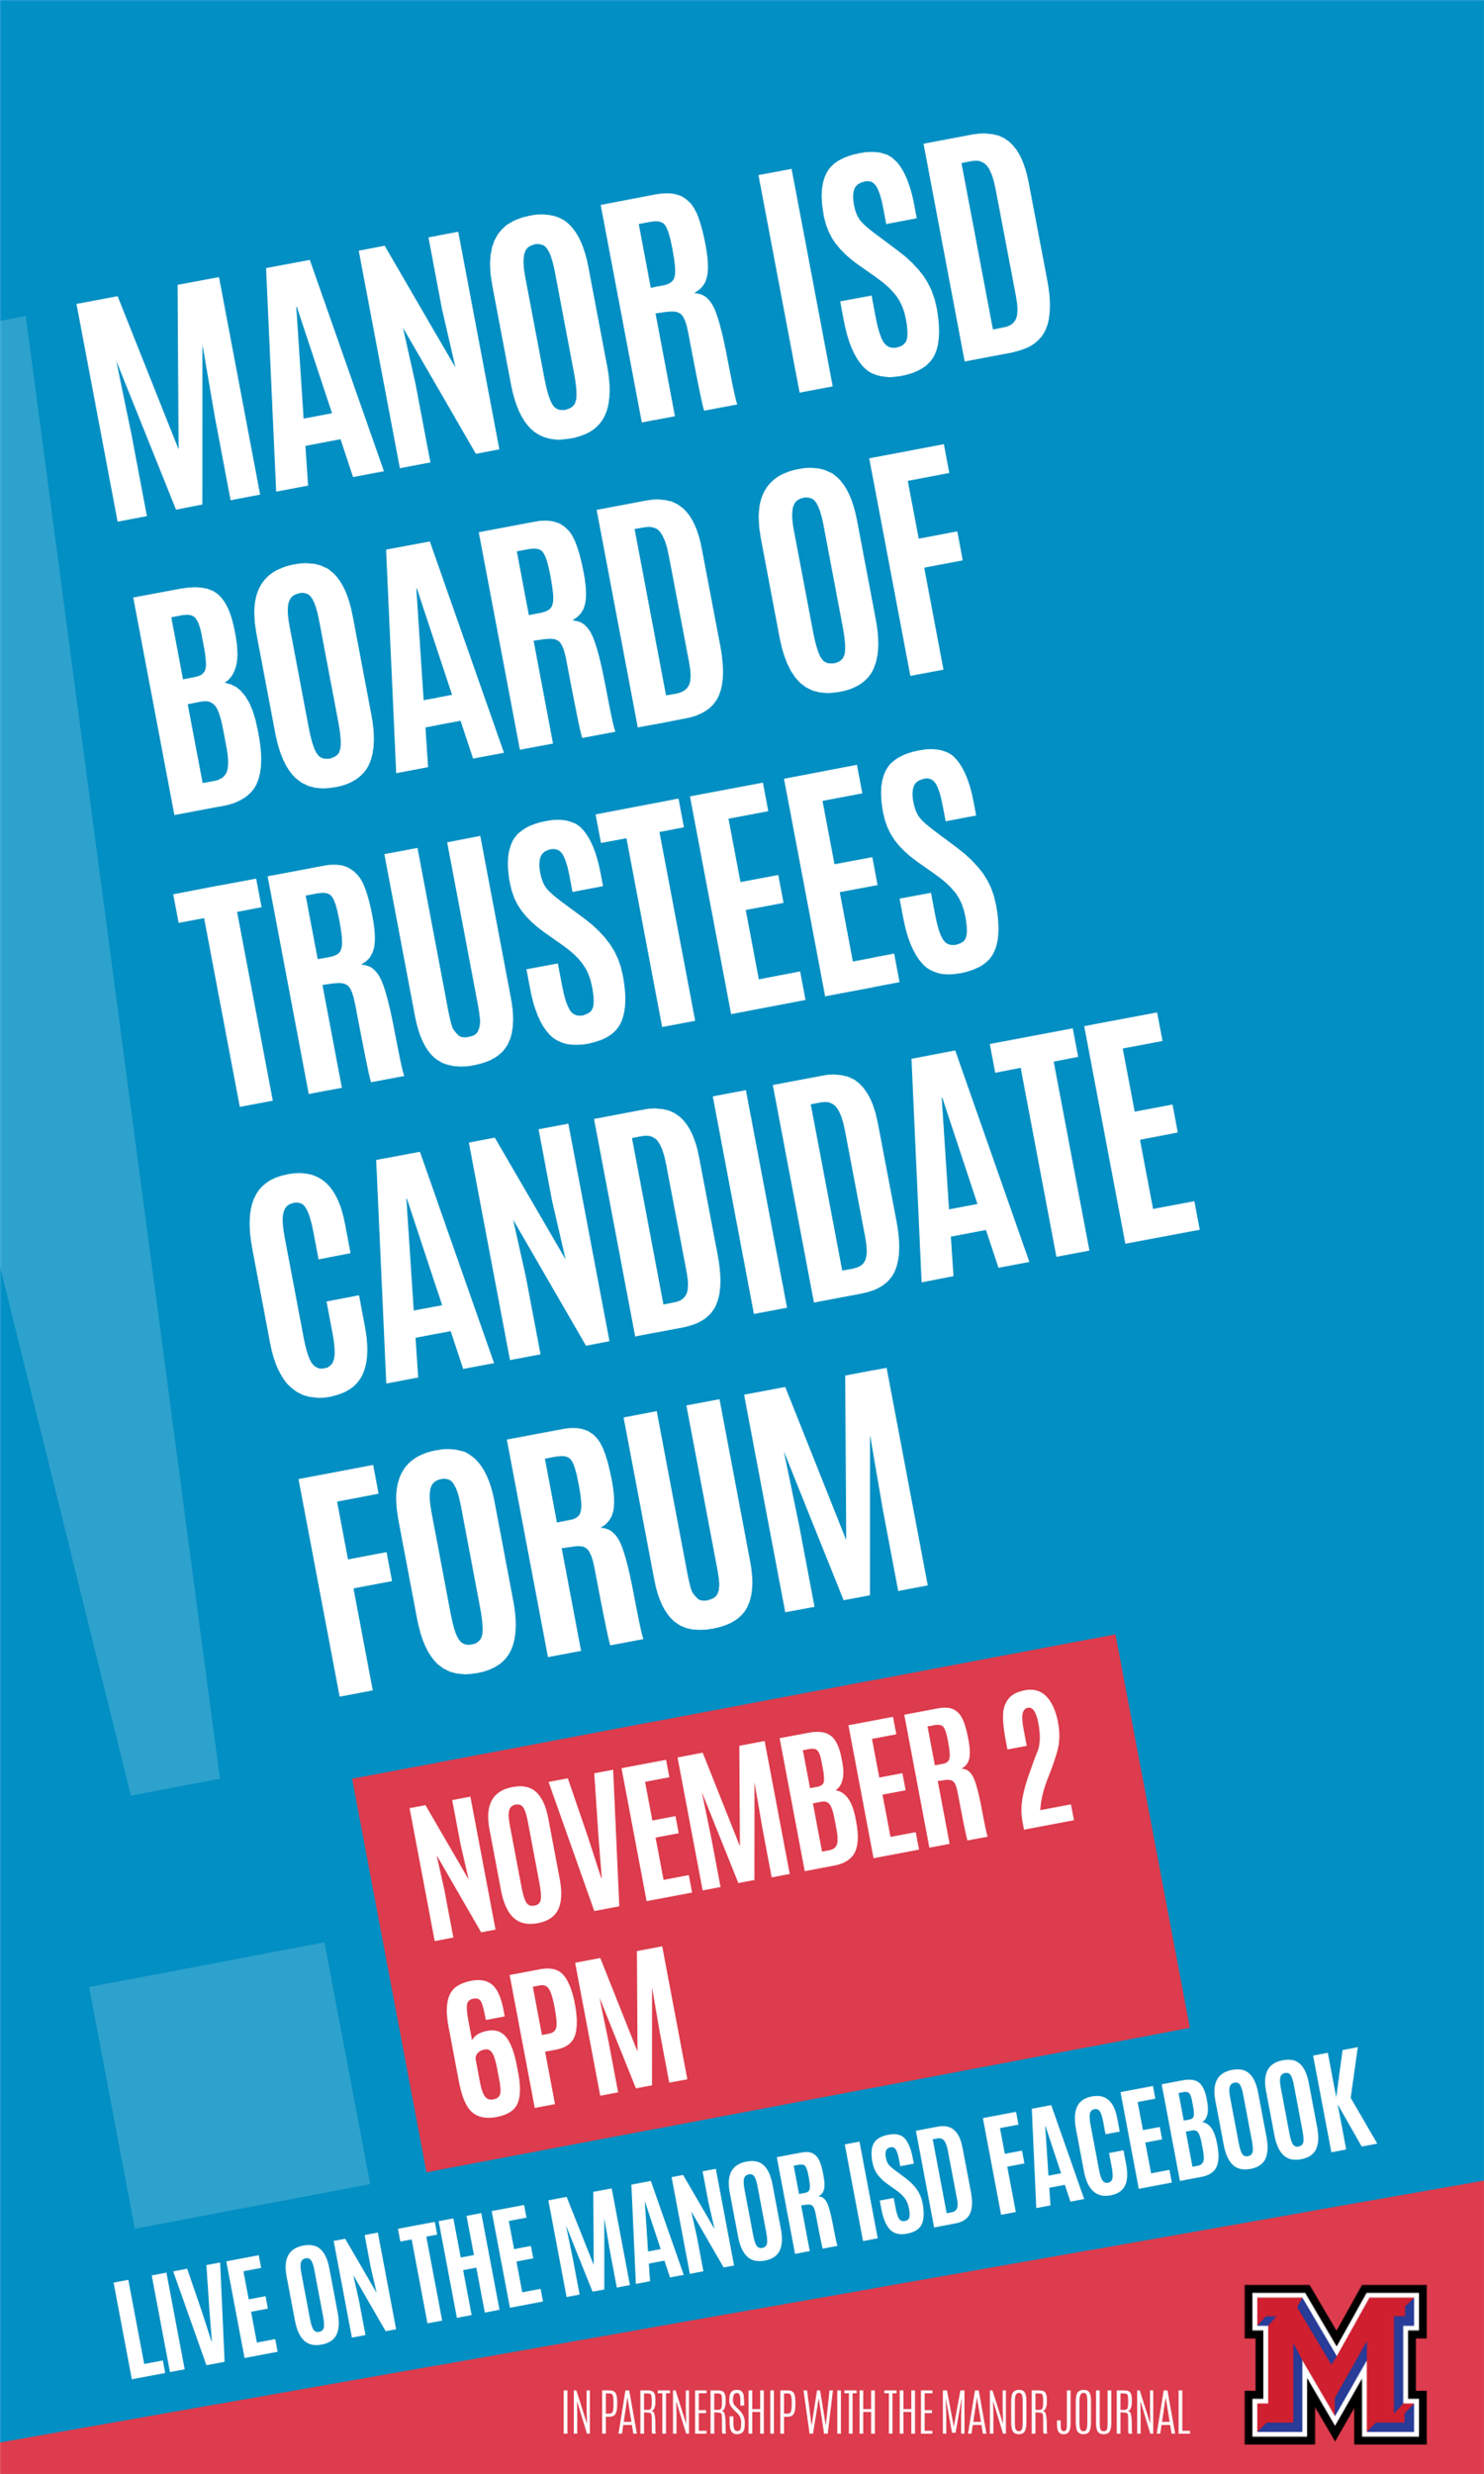 Manor ISD to Host Board of Trustees Candidate Forum November 2